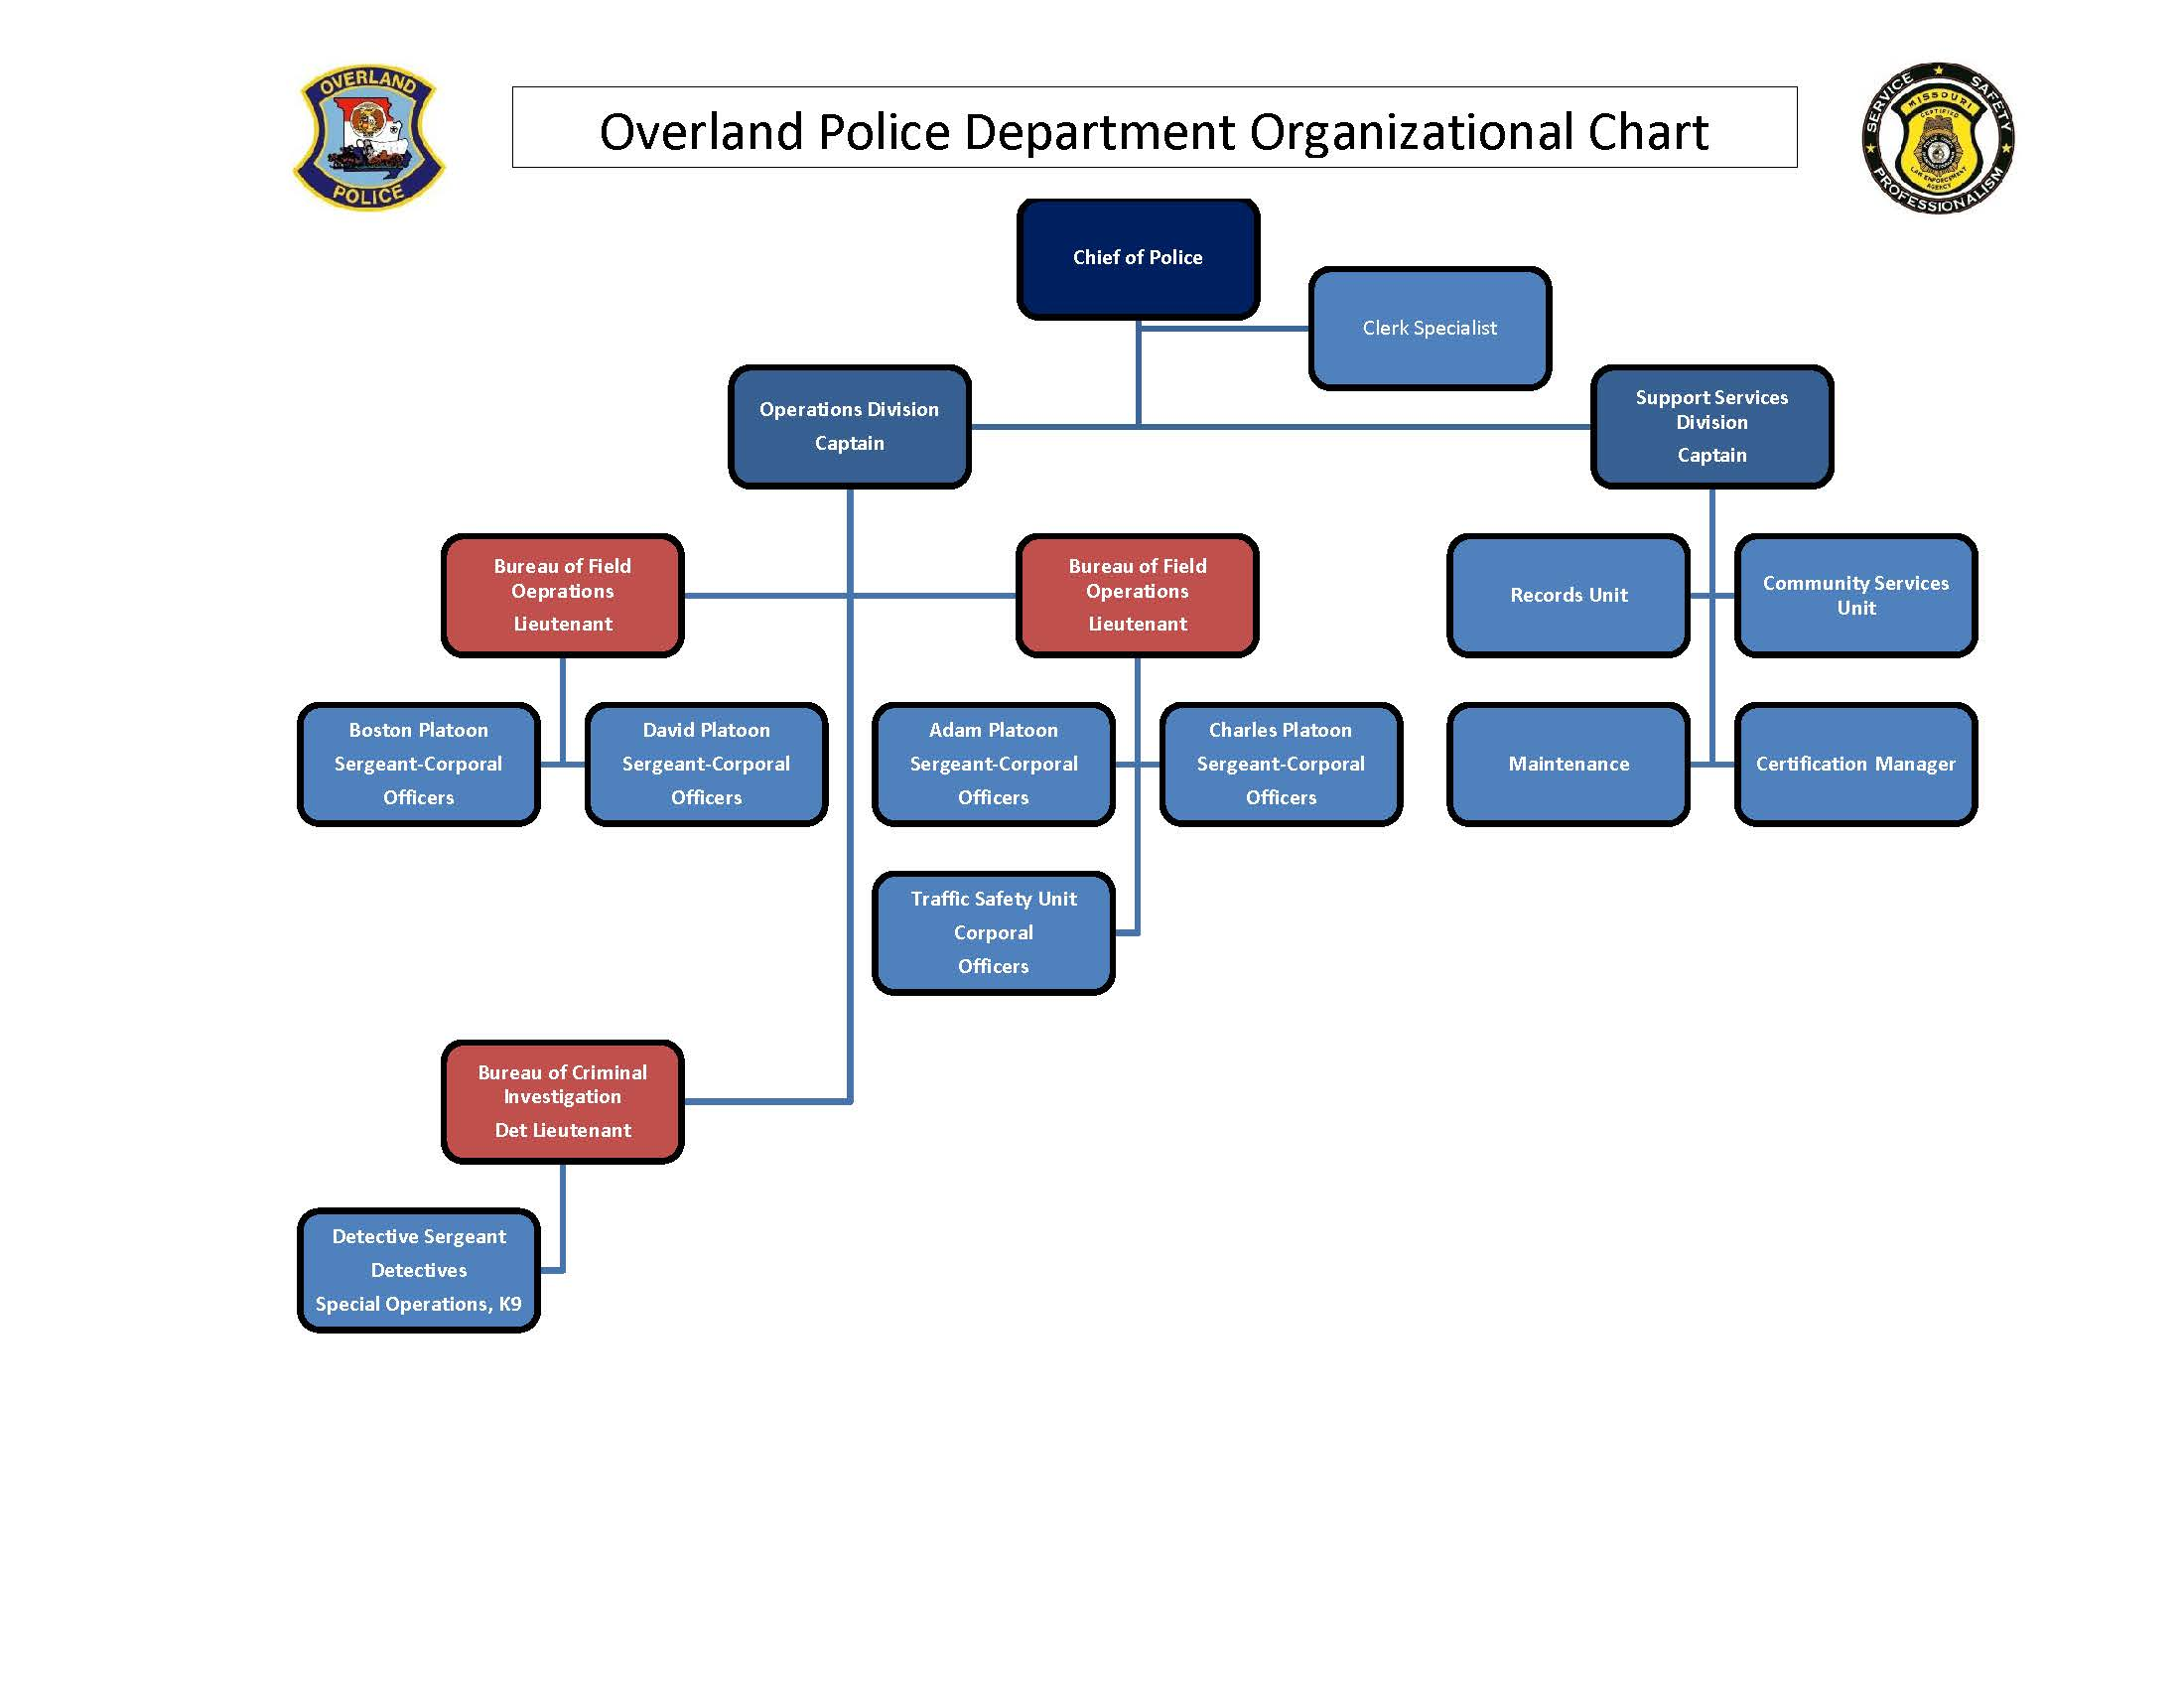 Organizational Chart Revised 03-02-2020